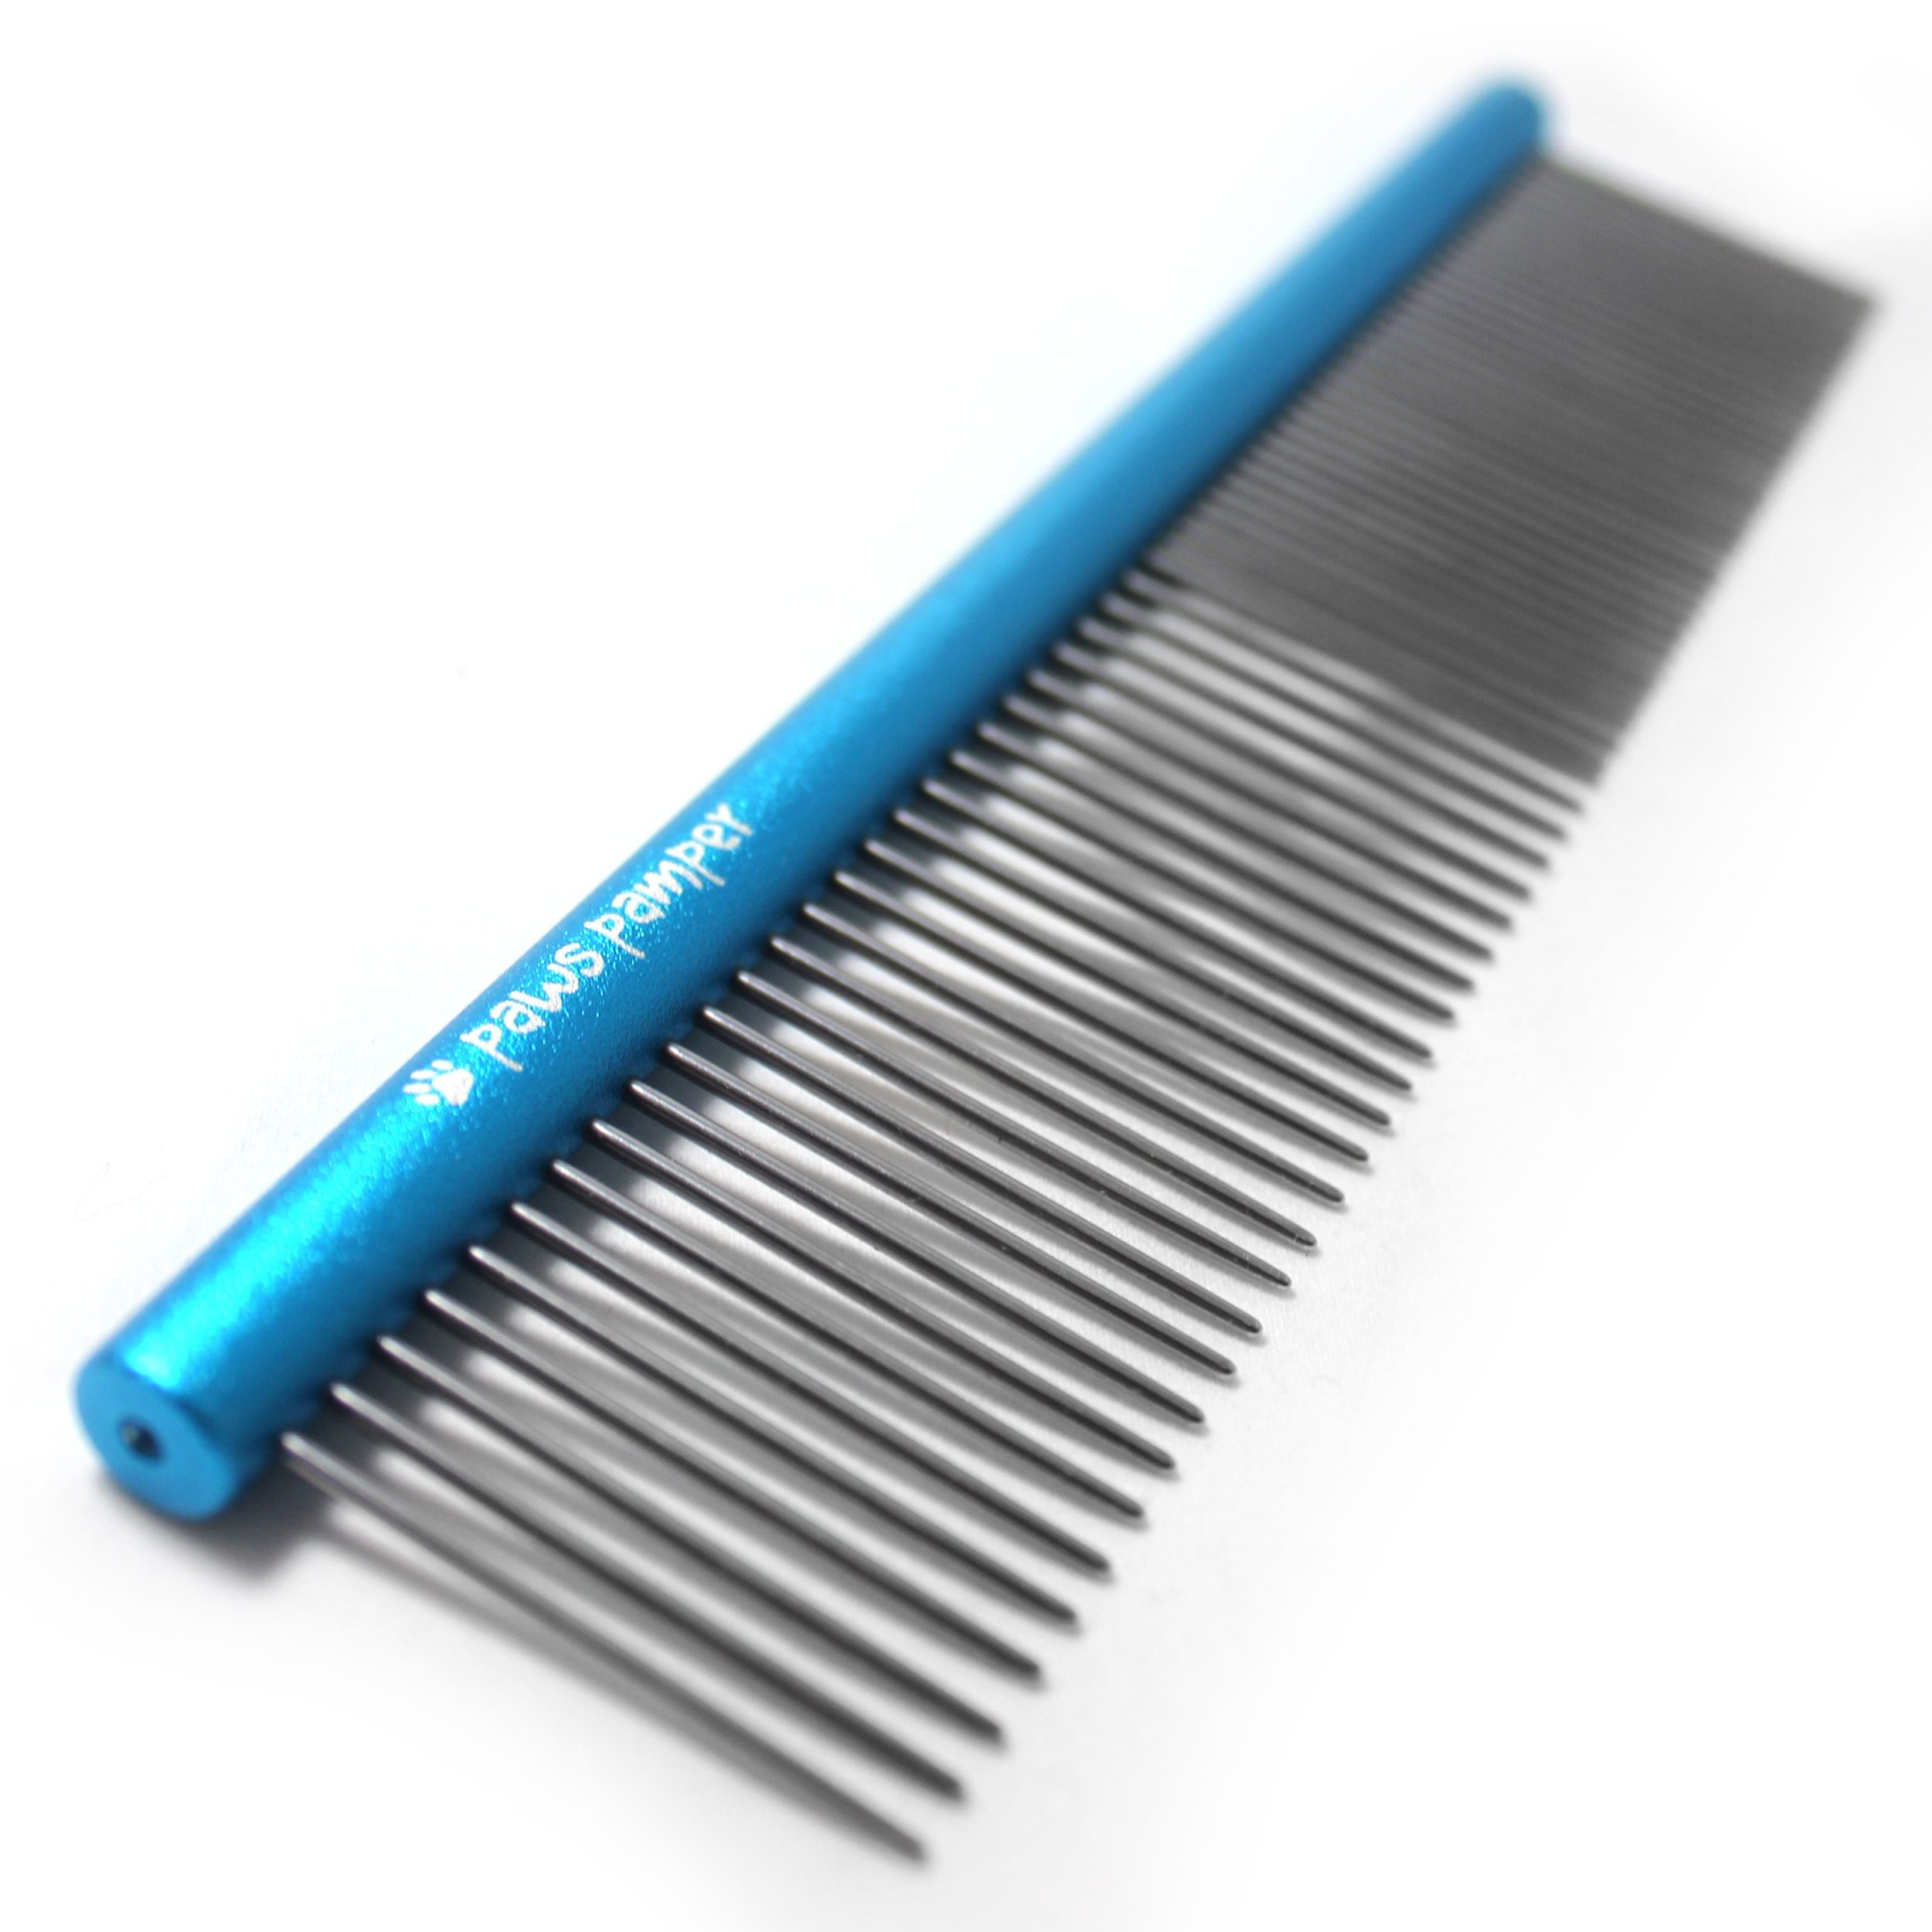 Paws Pamper Professional Grooming Comb for Dogs & Cats, Anti-Corrosion Spine, Tapered Stainless Steel Pins